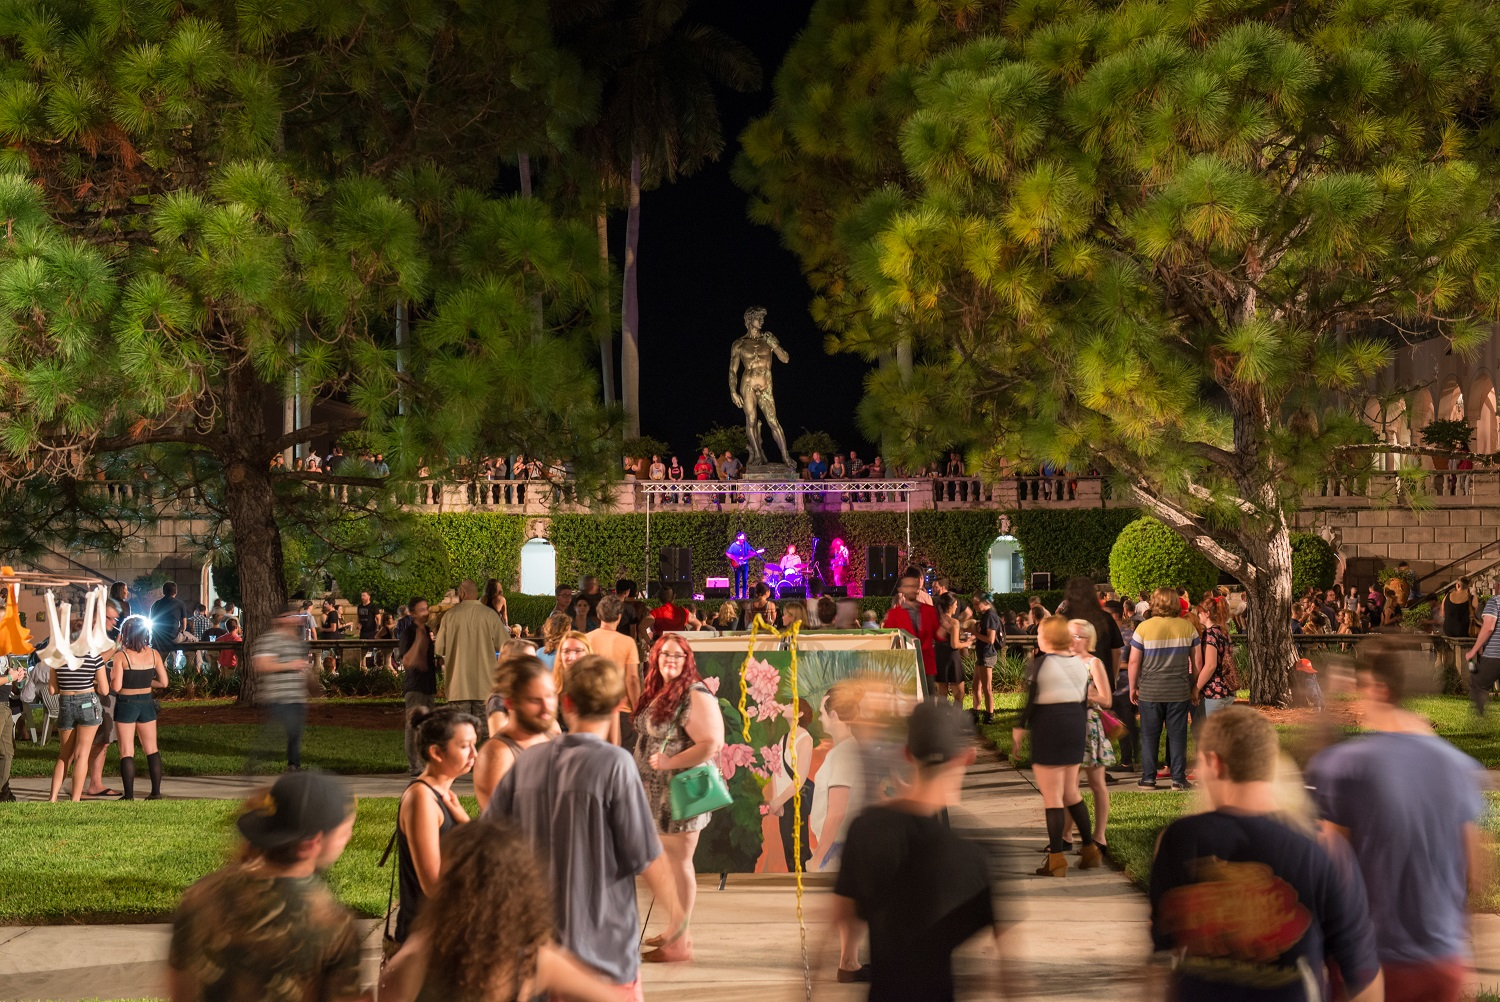 Ringling Underground Art and Music Event at The Ringling